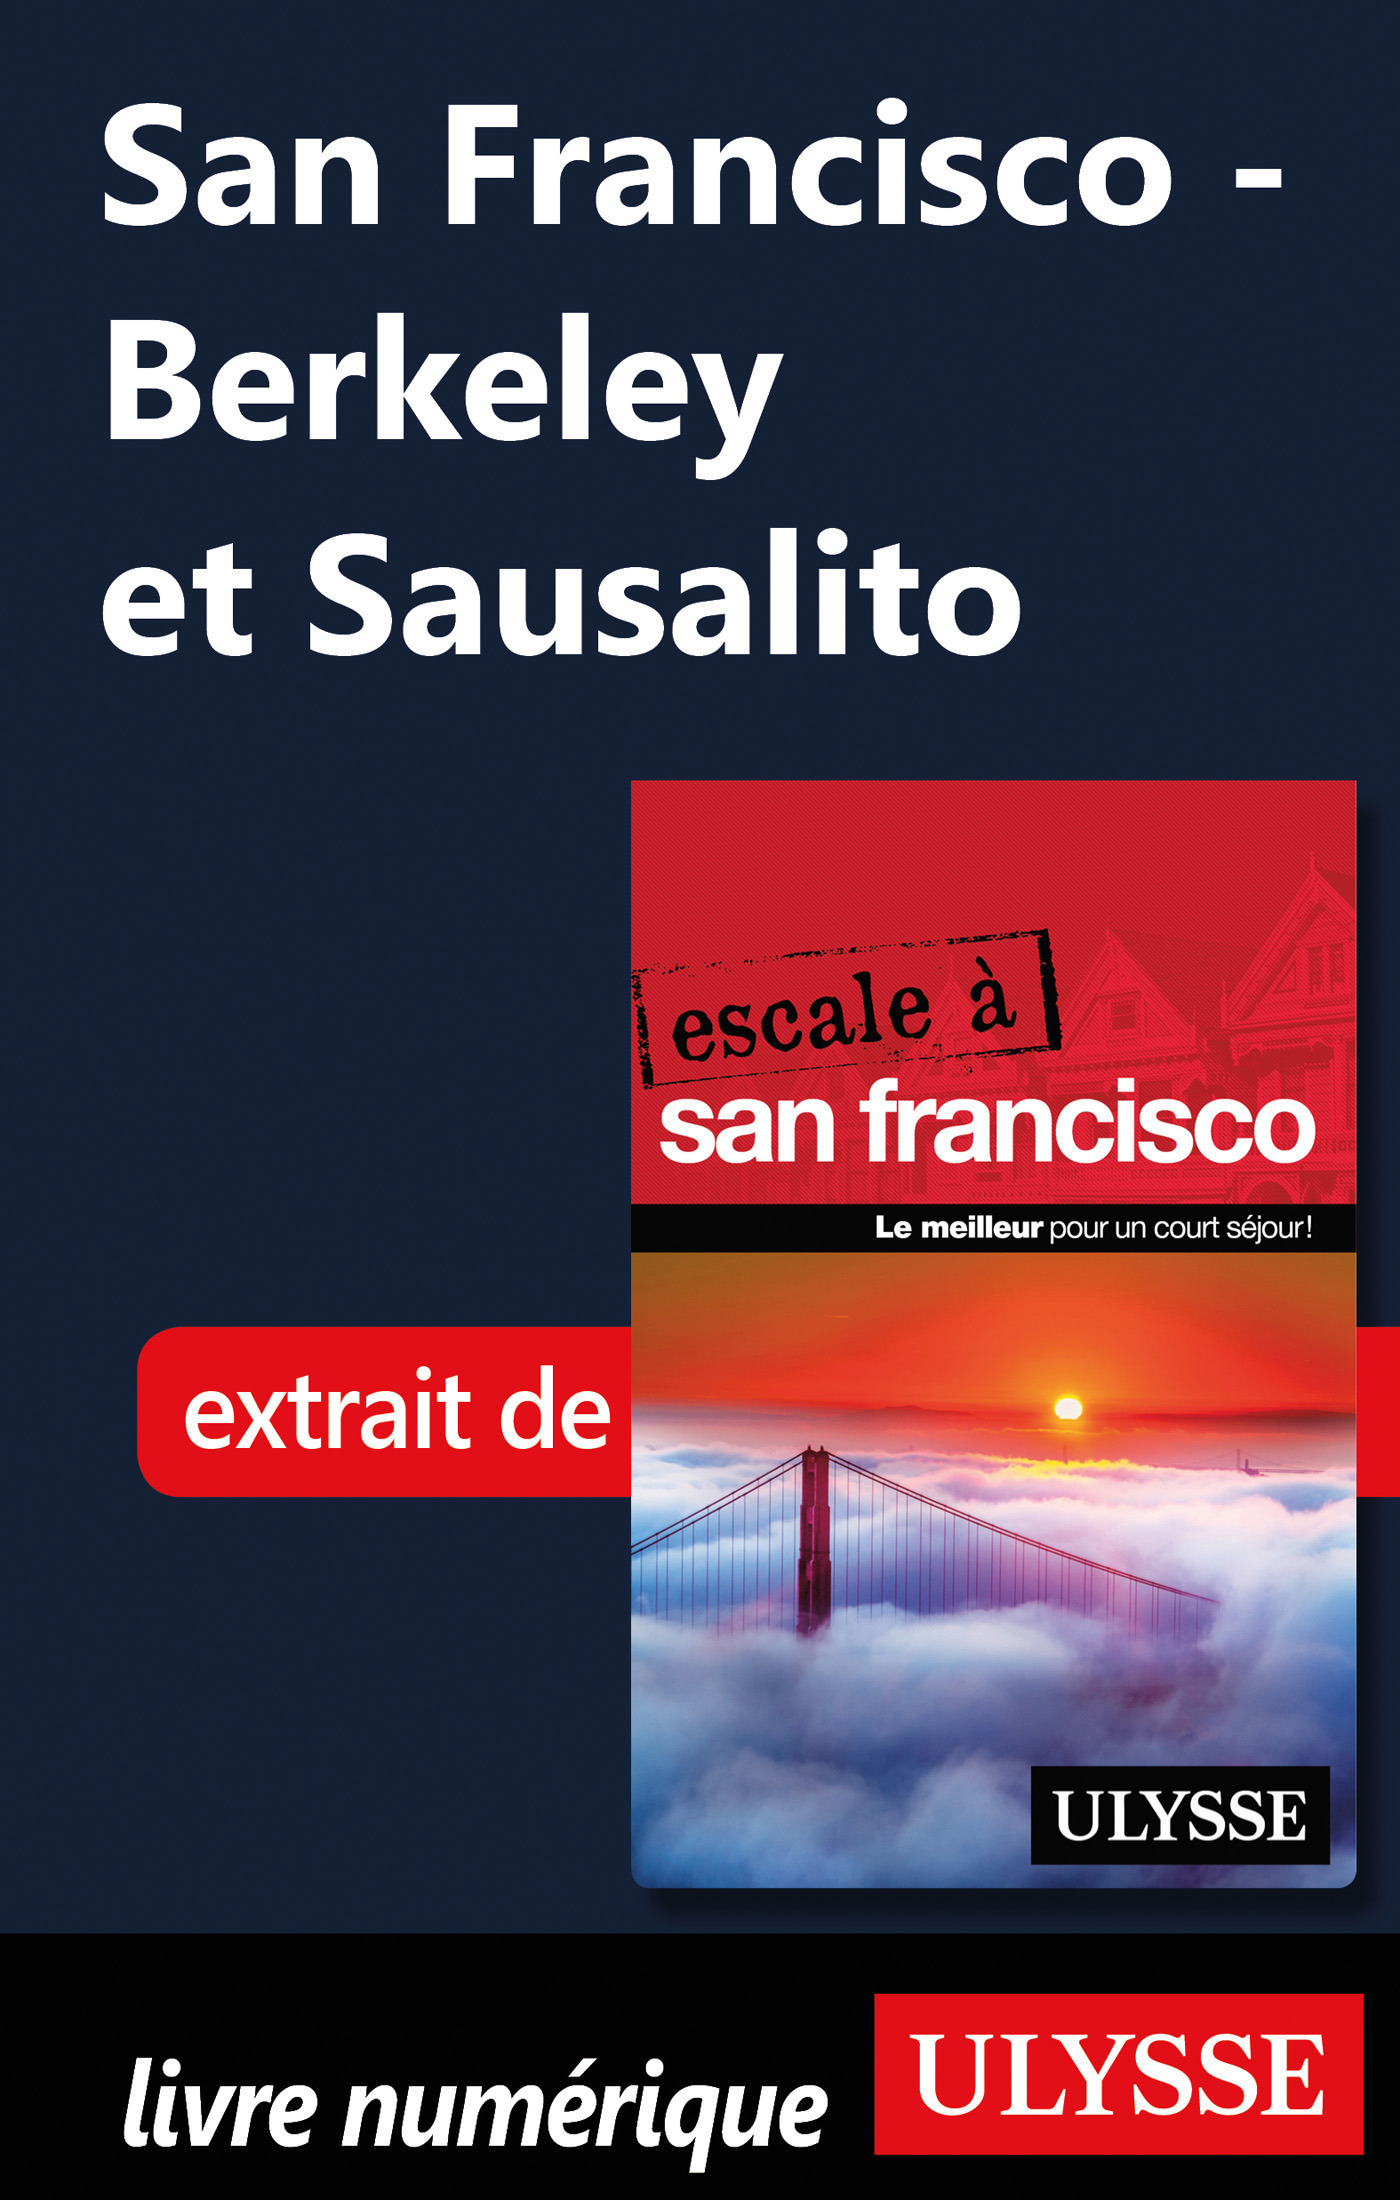 San Francisco - Berkeley et Sausalito